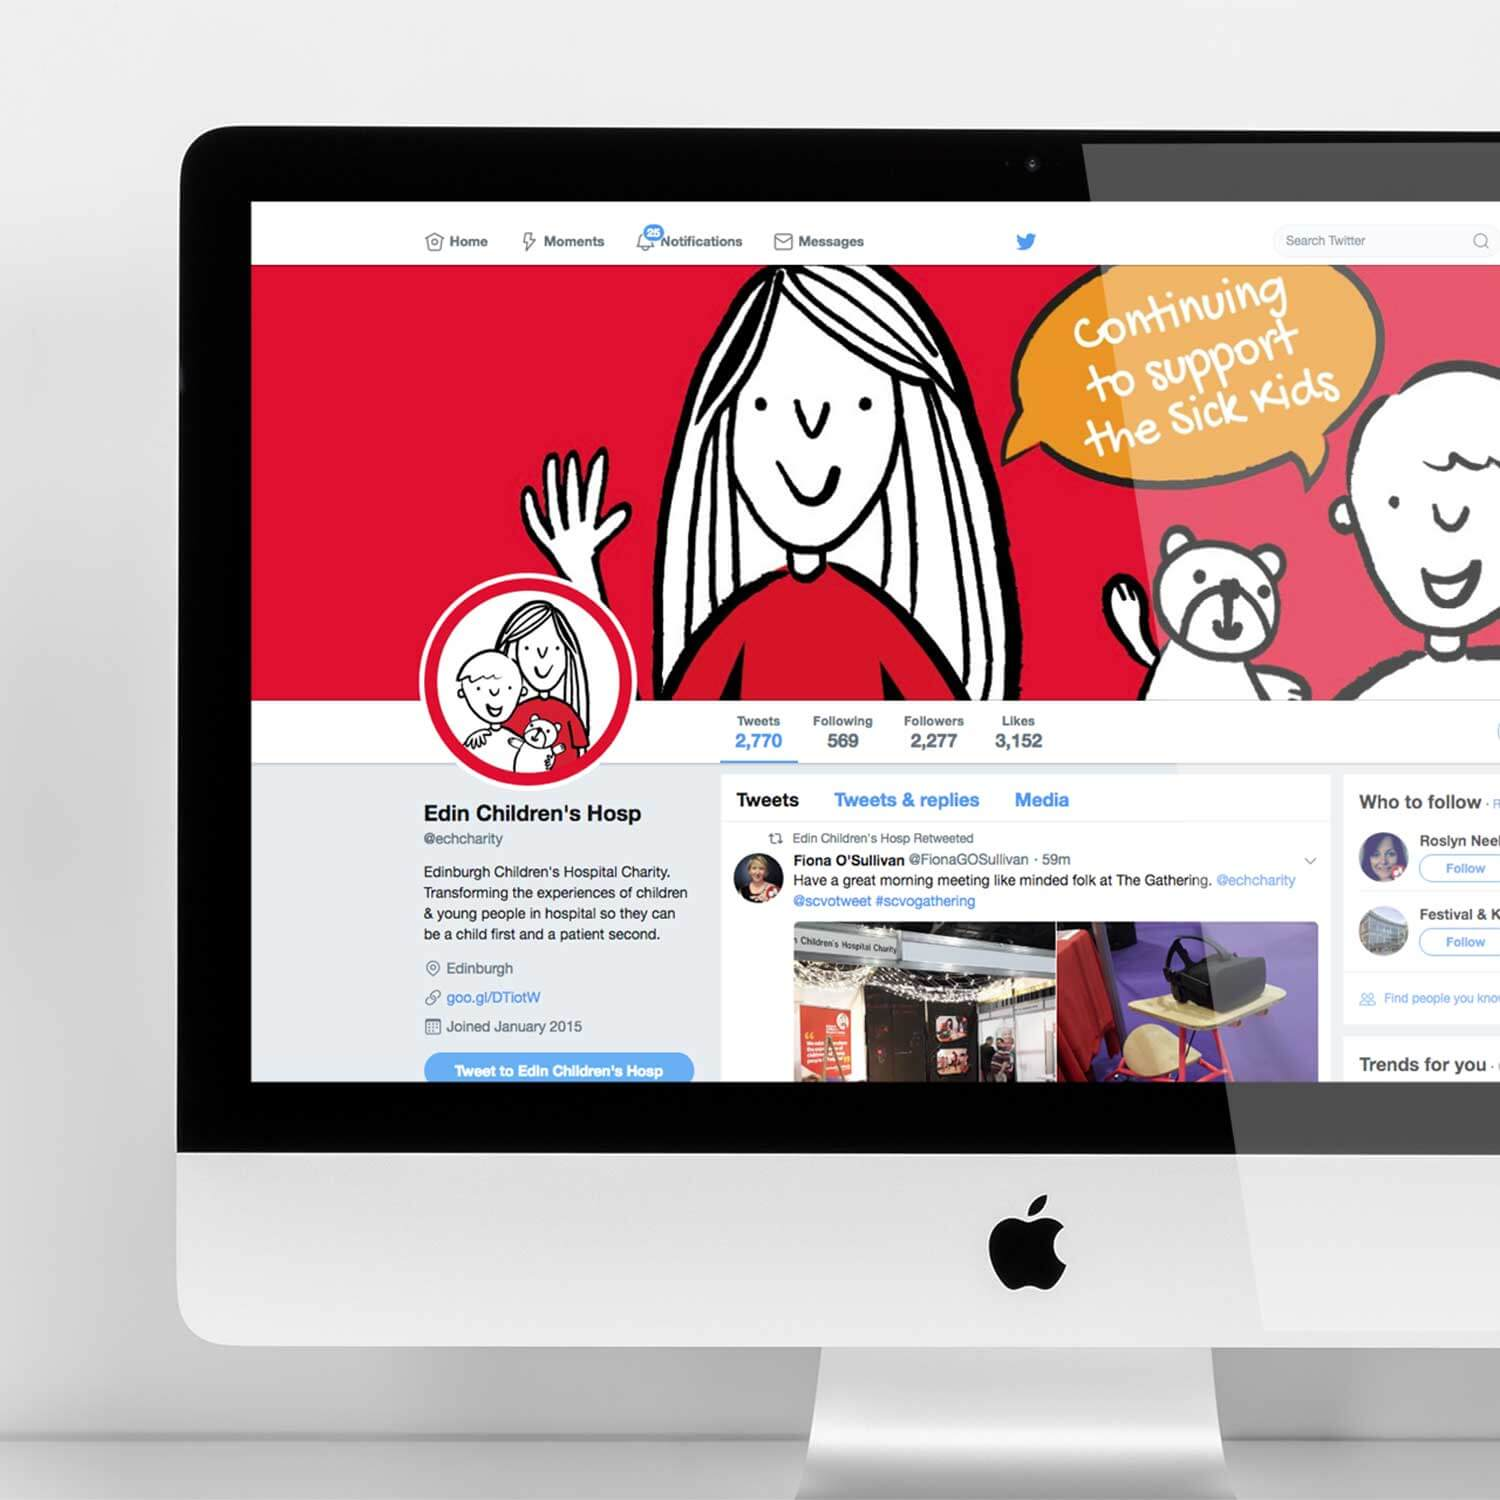 Branded social media visual for third sector marketing project